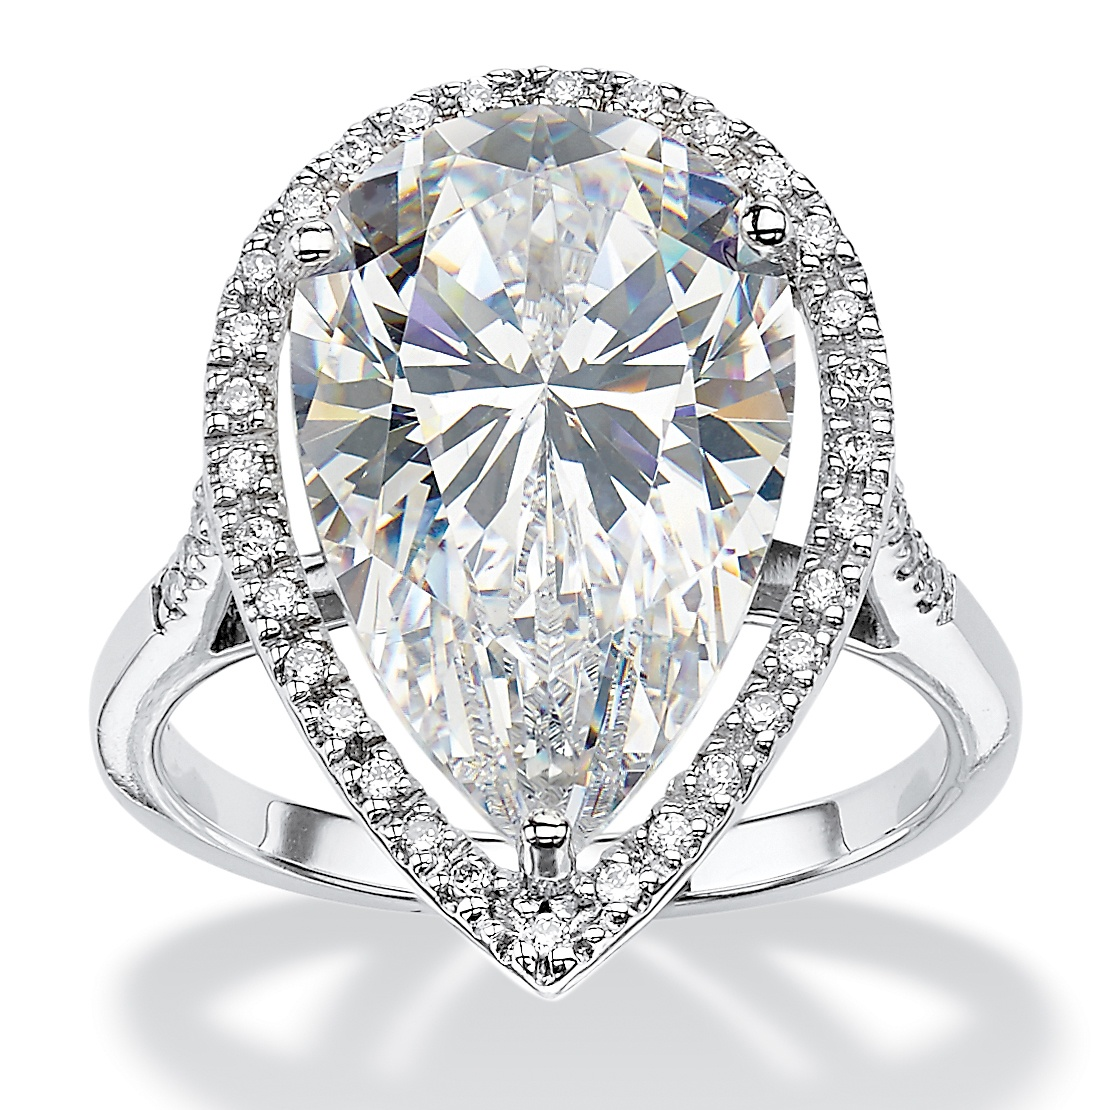 8.33 TCW Pear-Cut Cubic Zirconia Halo Ring in Platinum over Sterling Silver by PalmBeach Jewelry